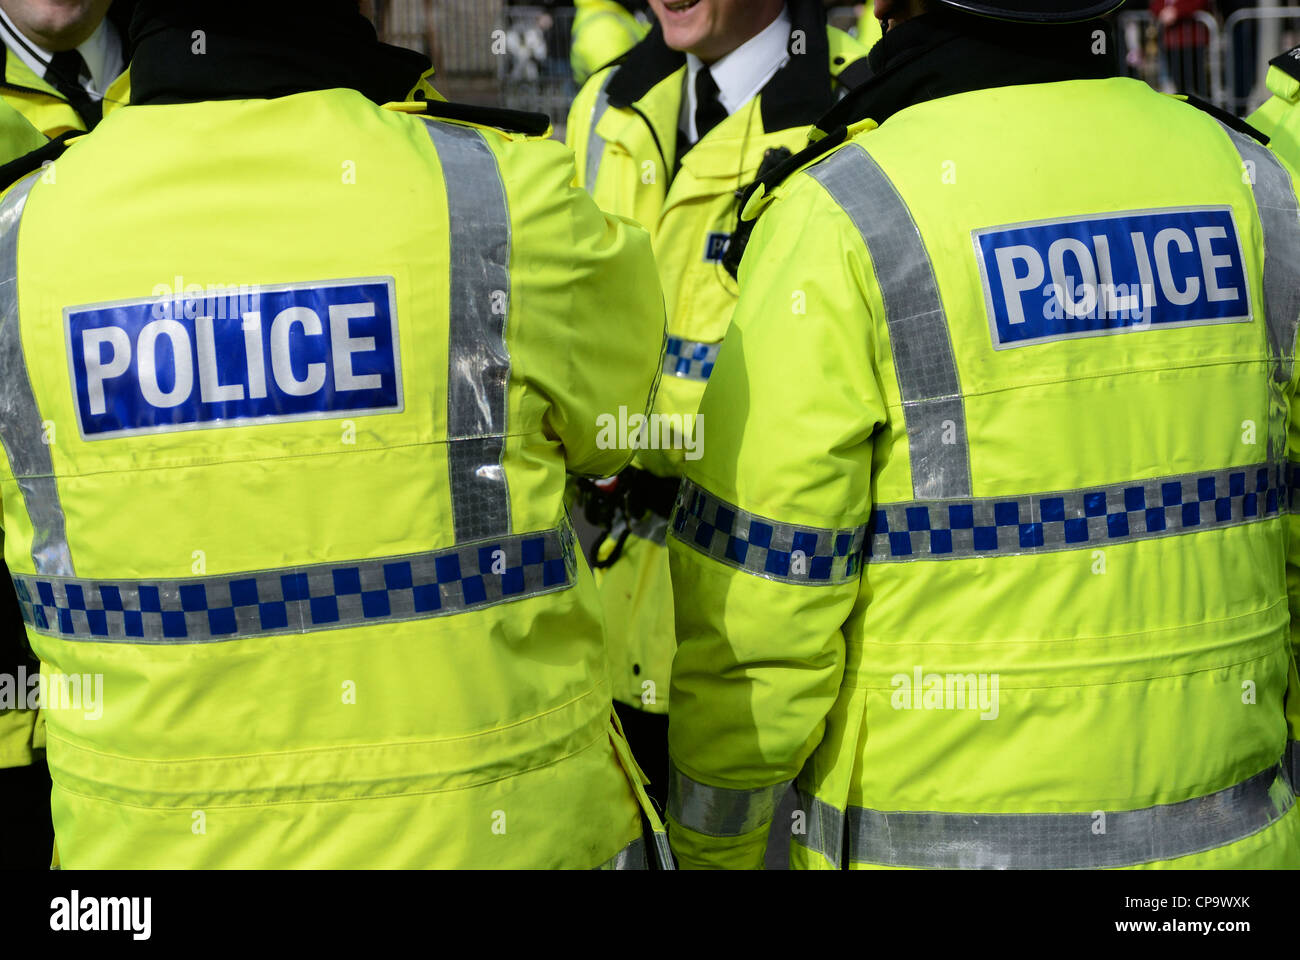 Police in fluorescent yellow jackets. Stock Photo